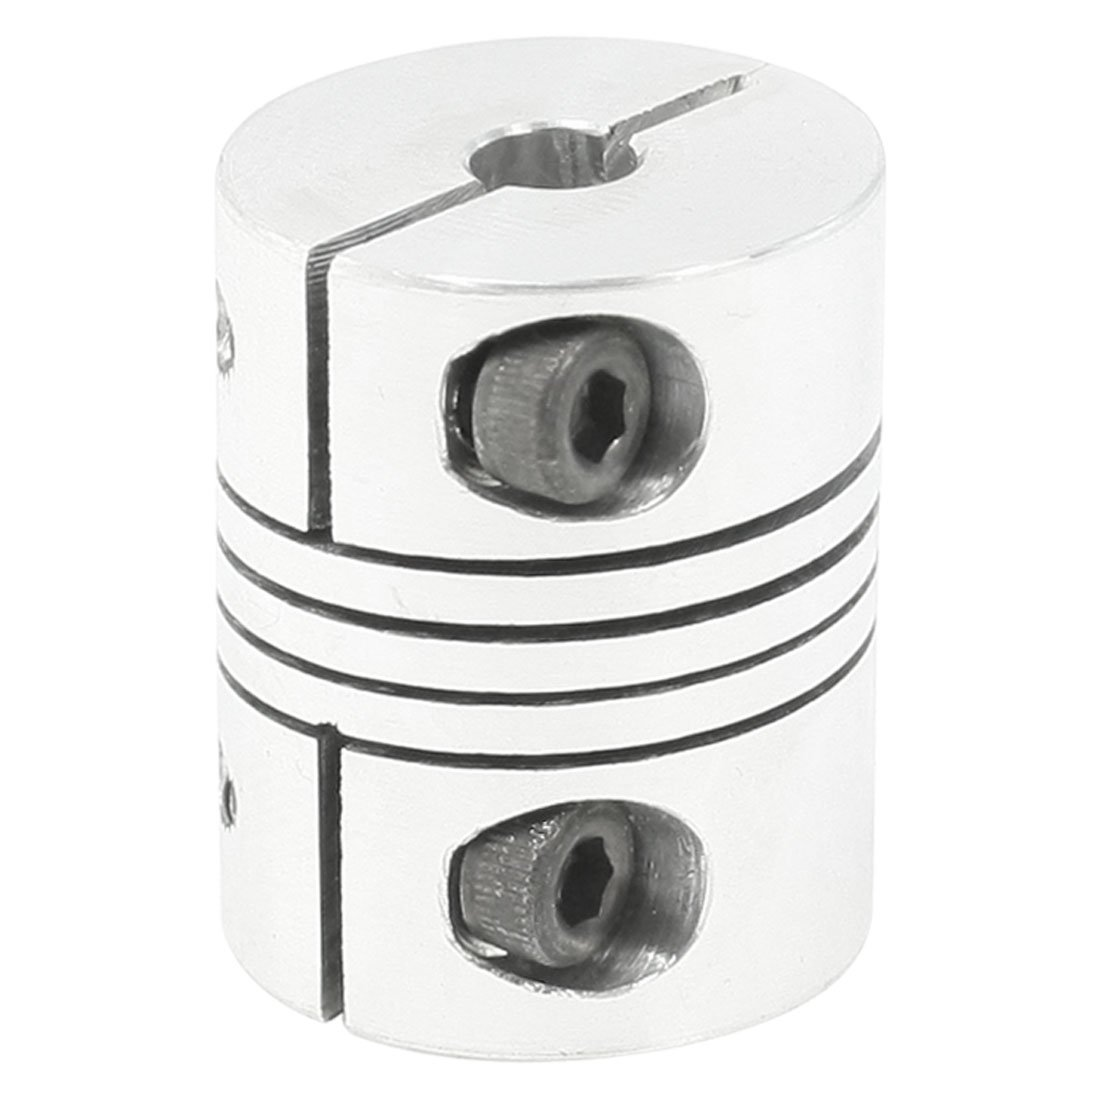 MYLB-CNC Motor Shaft Coupler 5mm to 8mm Flexible Coupling 5mmx8mm flexible shaft coupling od18mmx25mm cnc stepper motor coupler connector 6 35 to 8mm